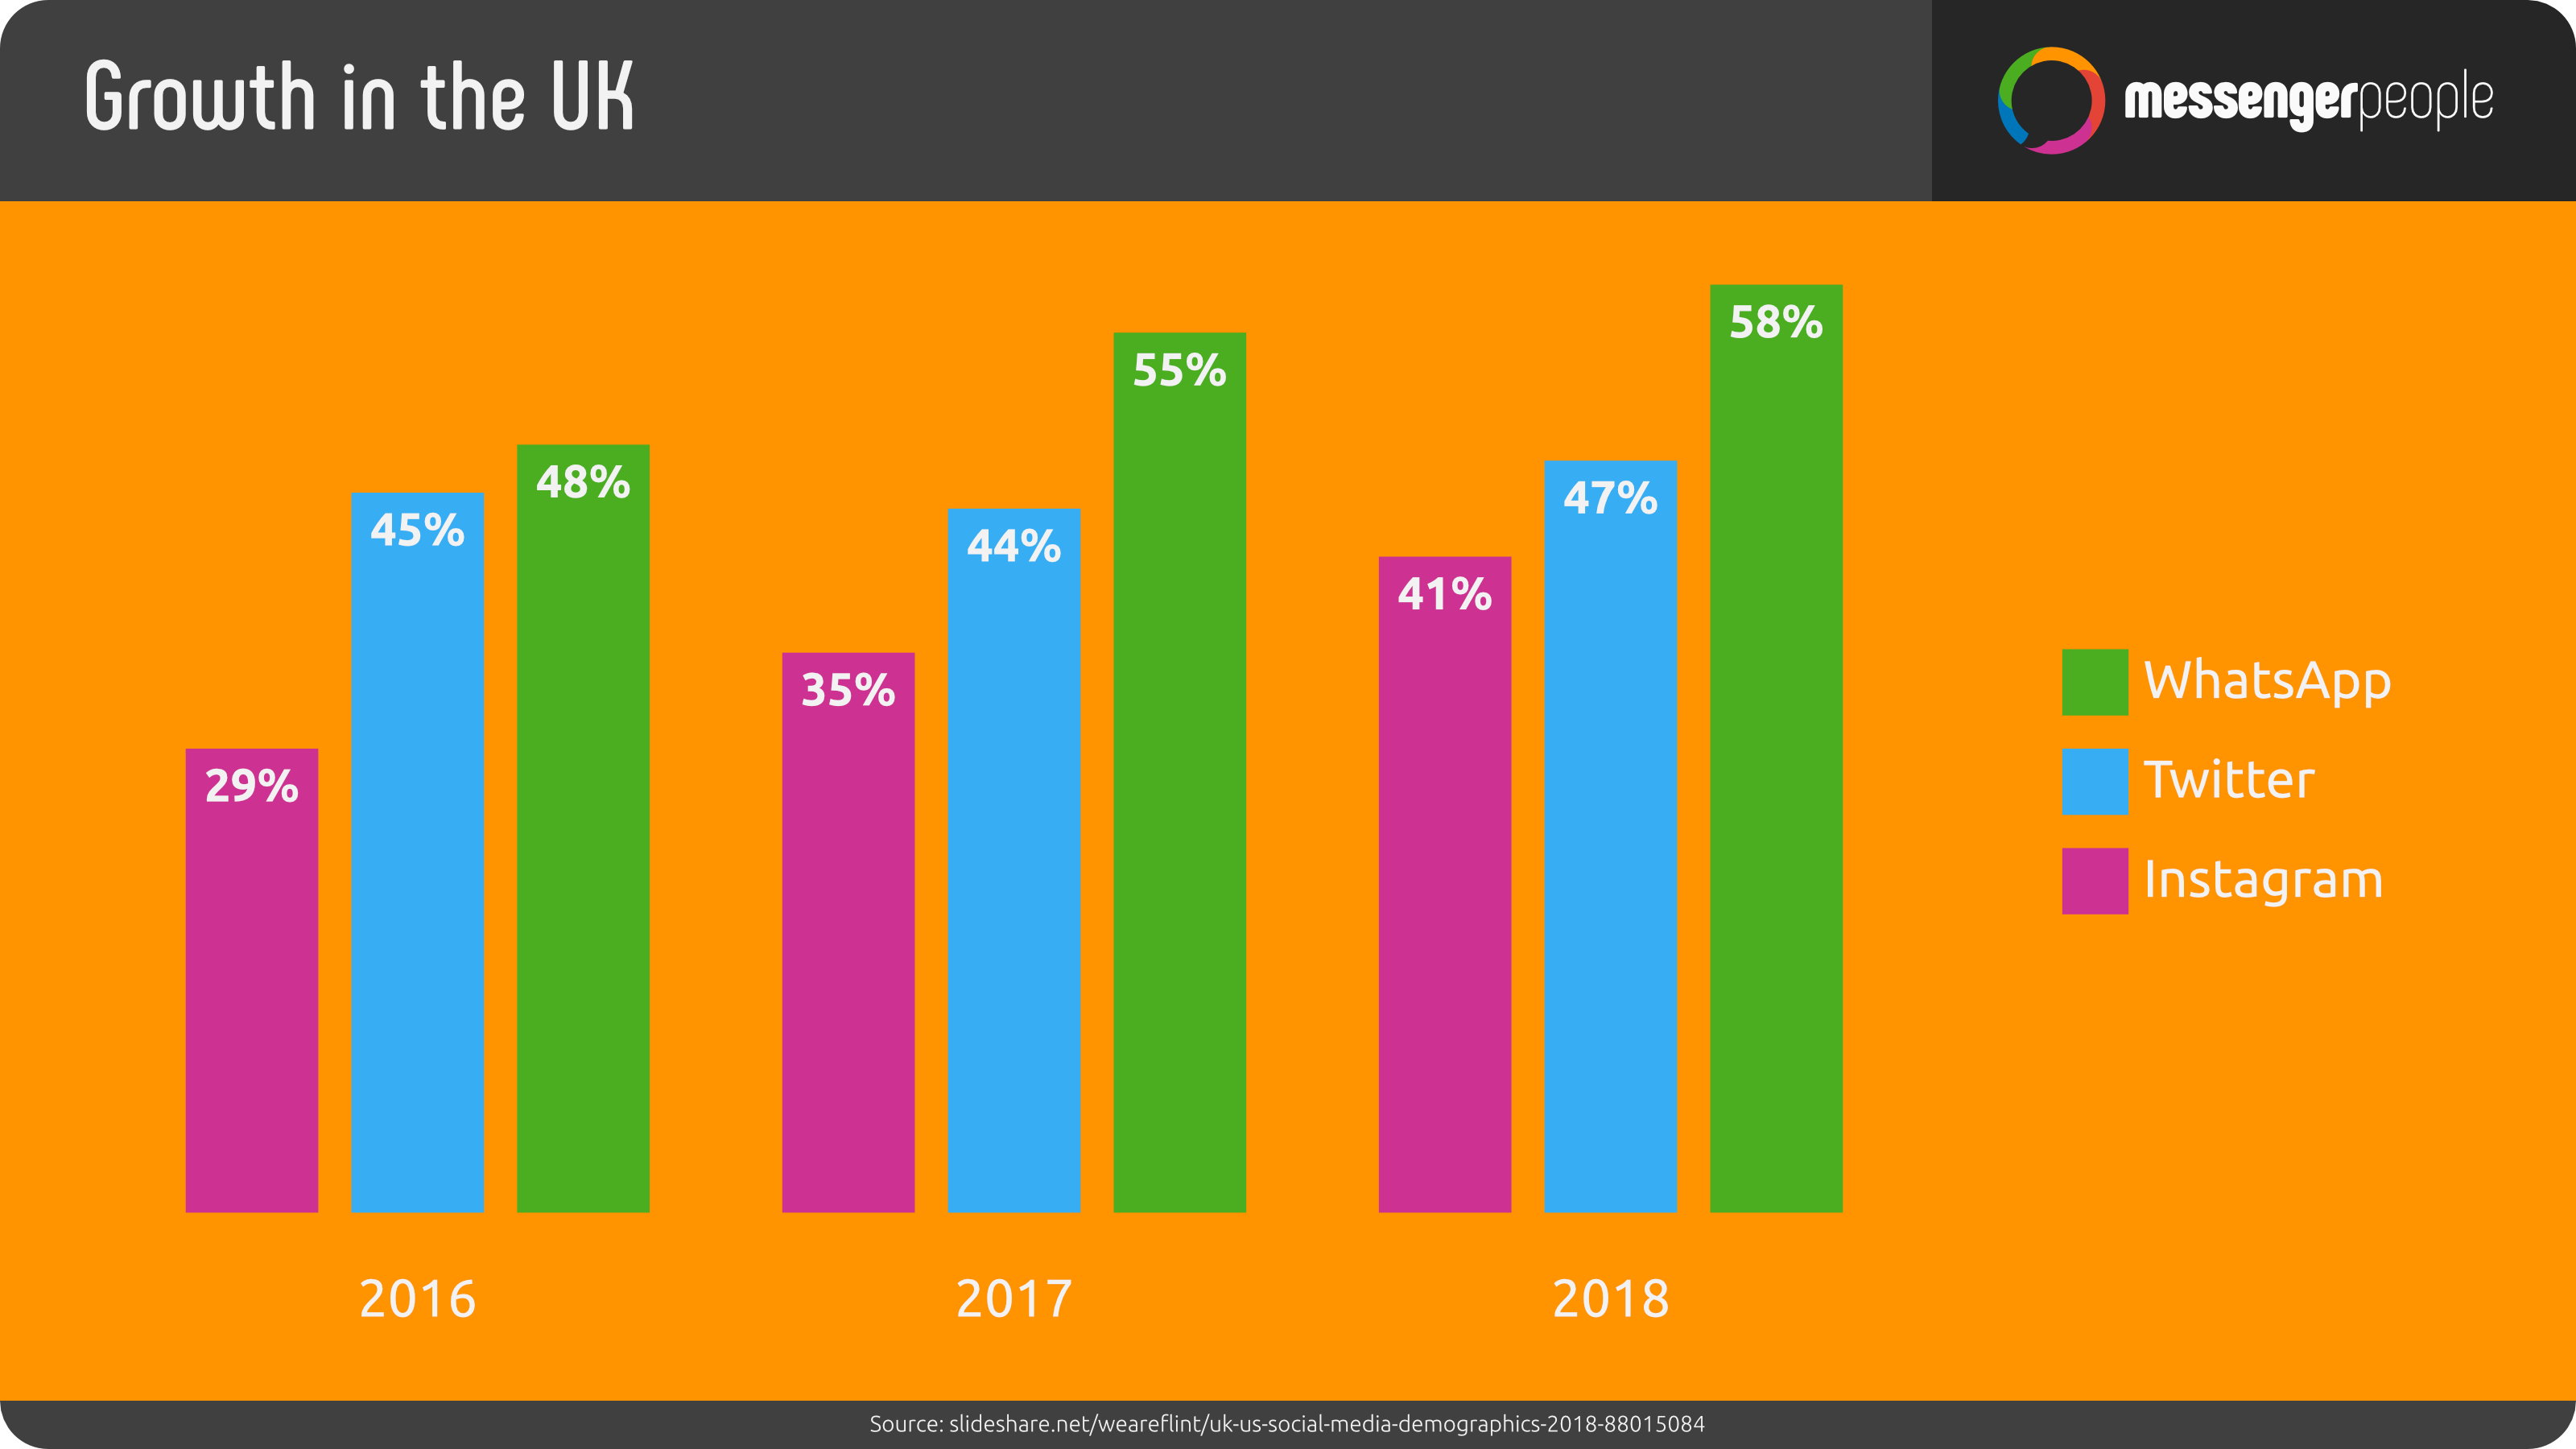 Growth in the UK